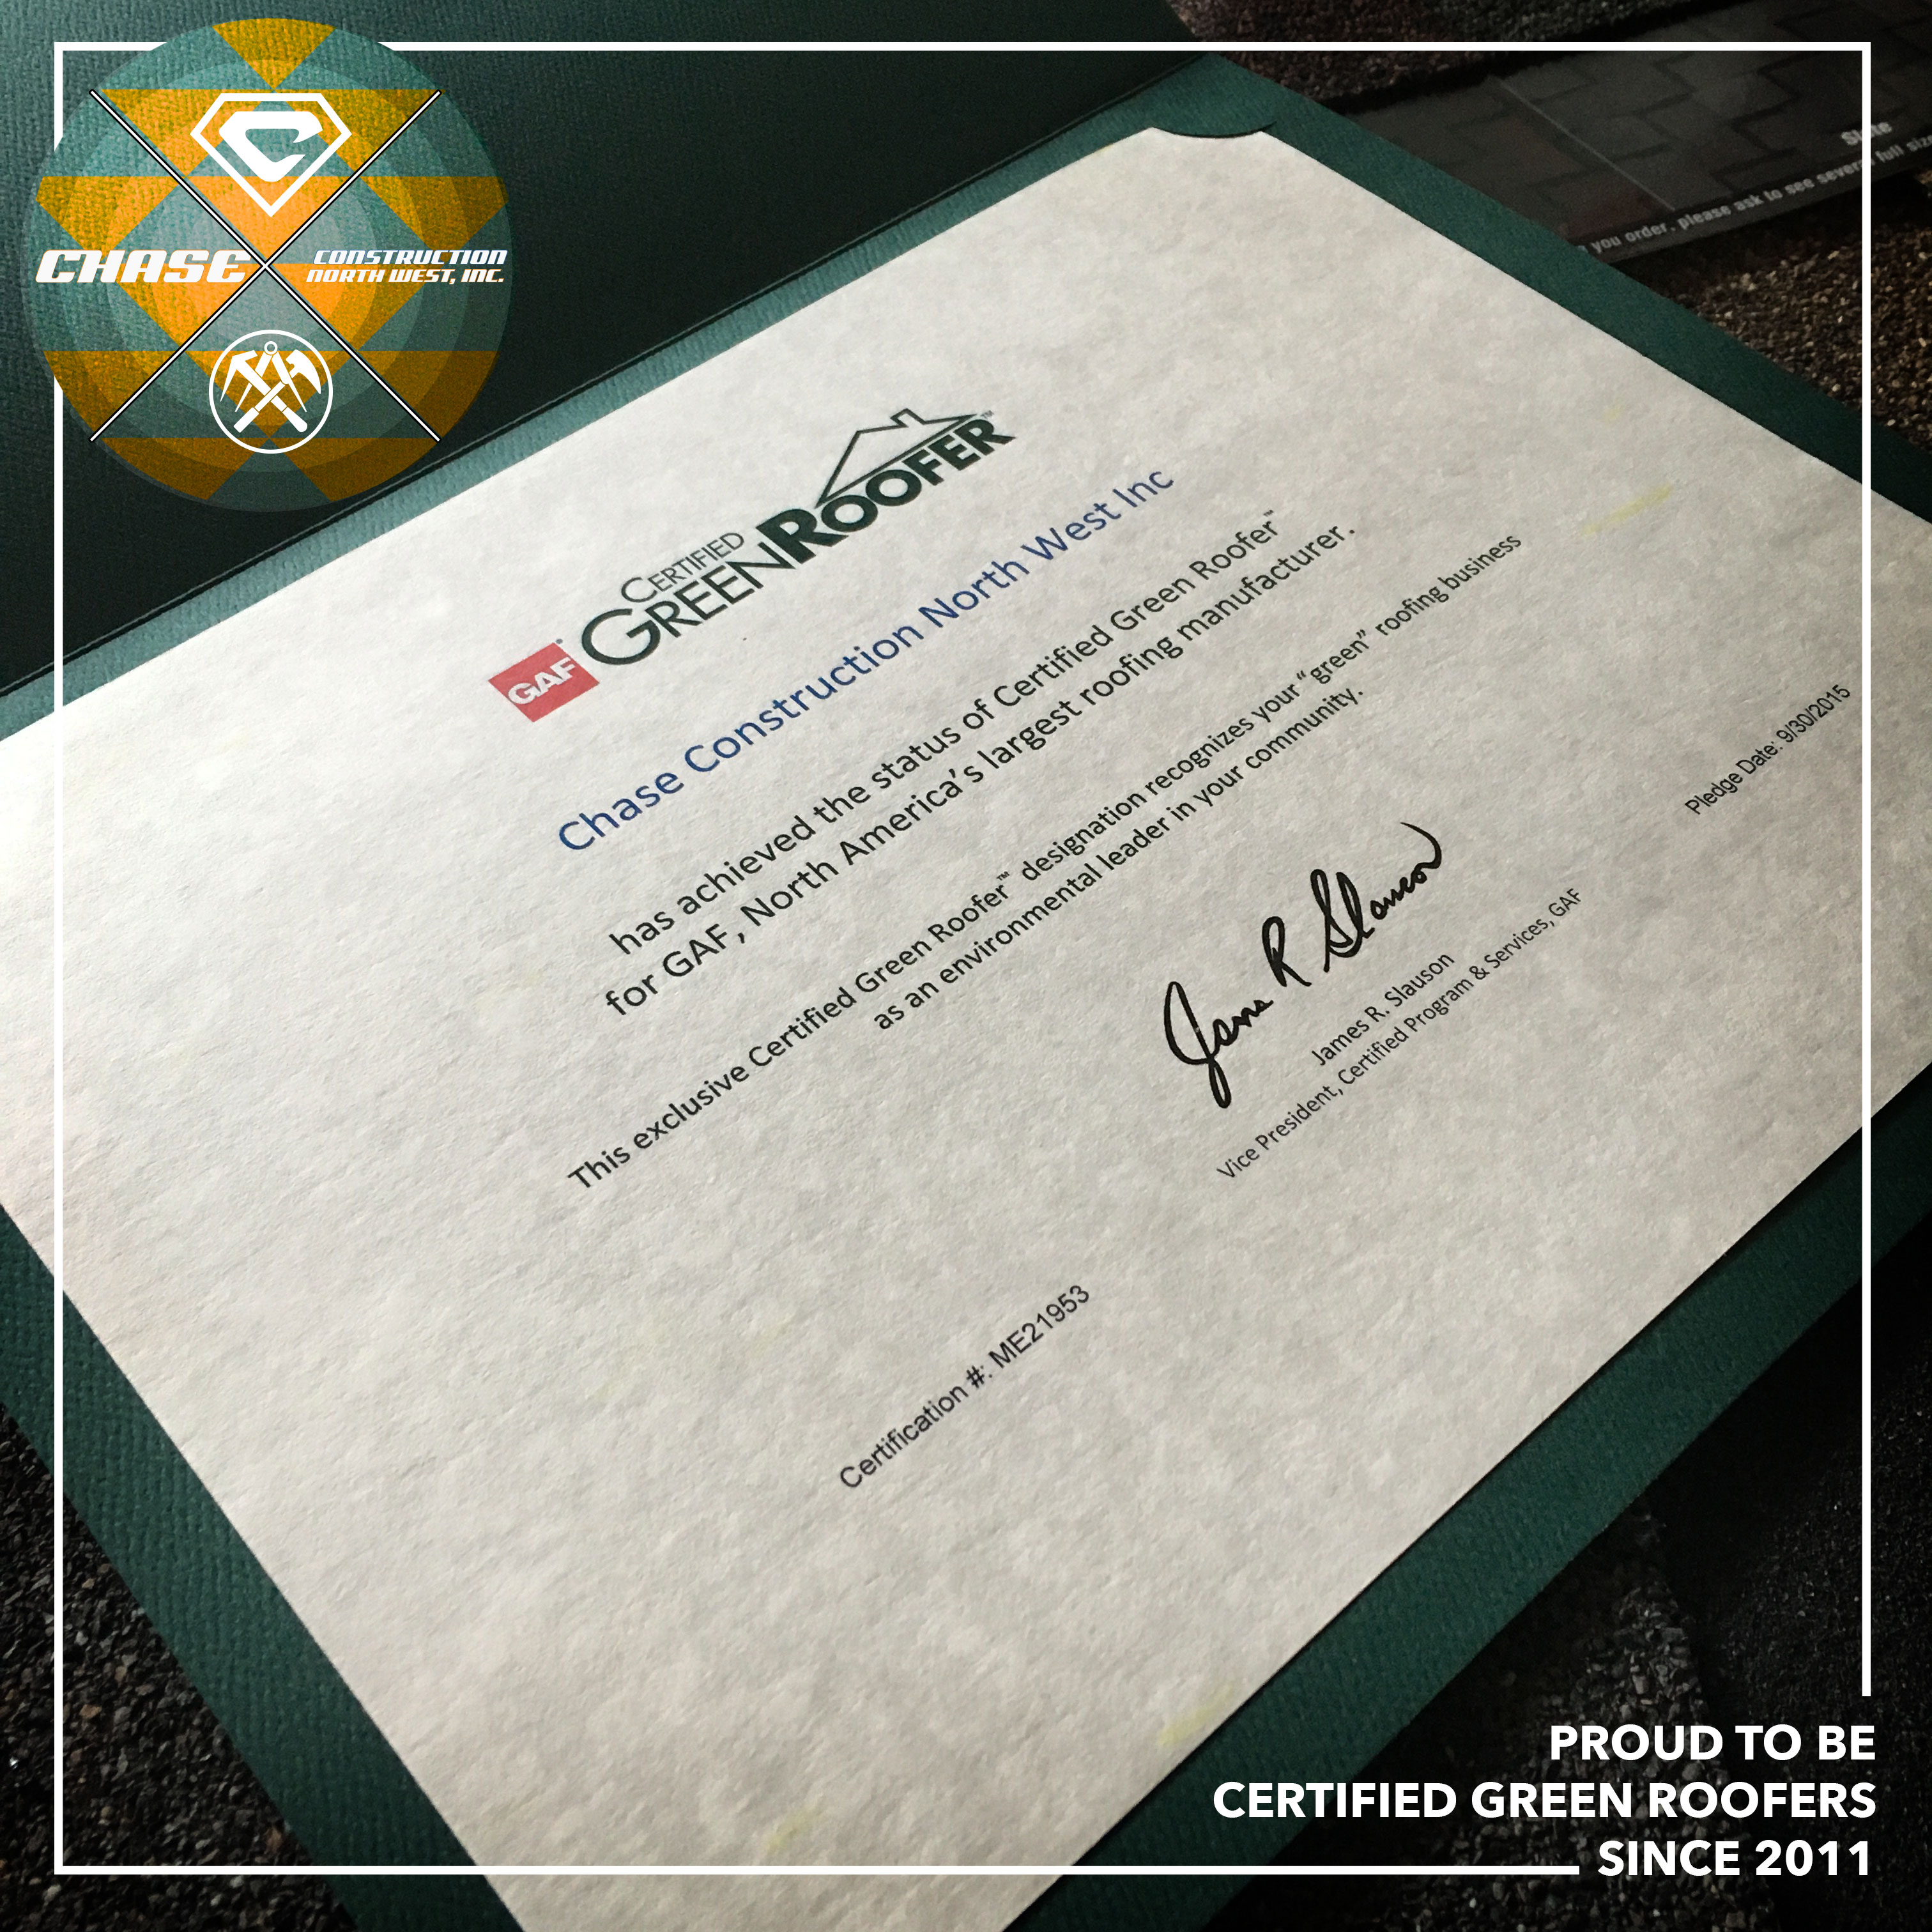 Chase Construction NW, Inc. is proud to be Certified Green Roofers since 2011